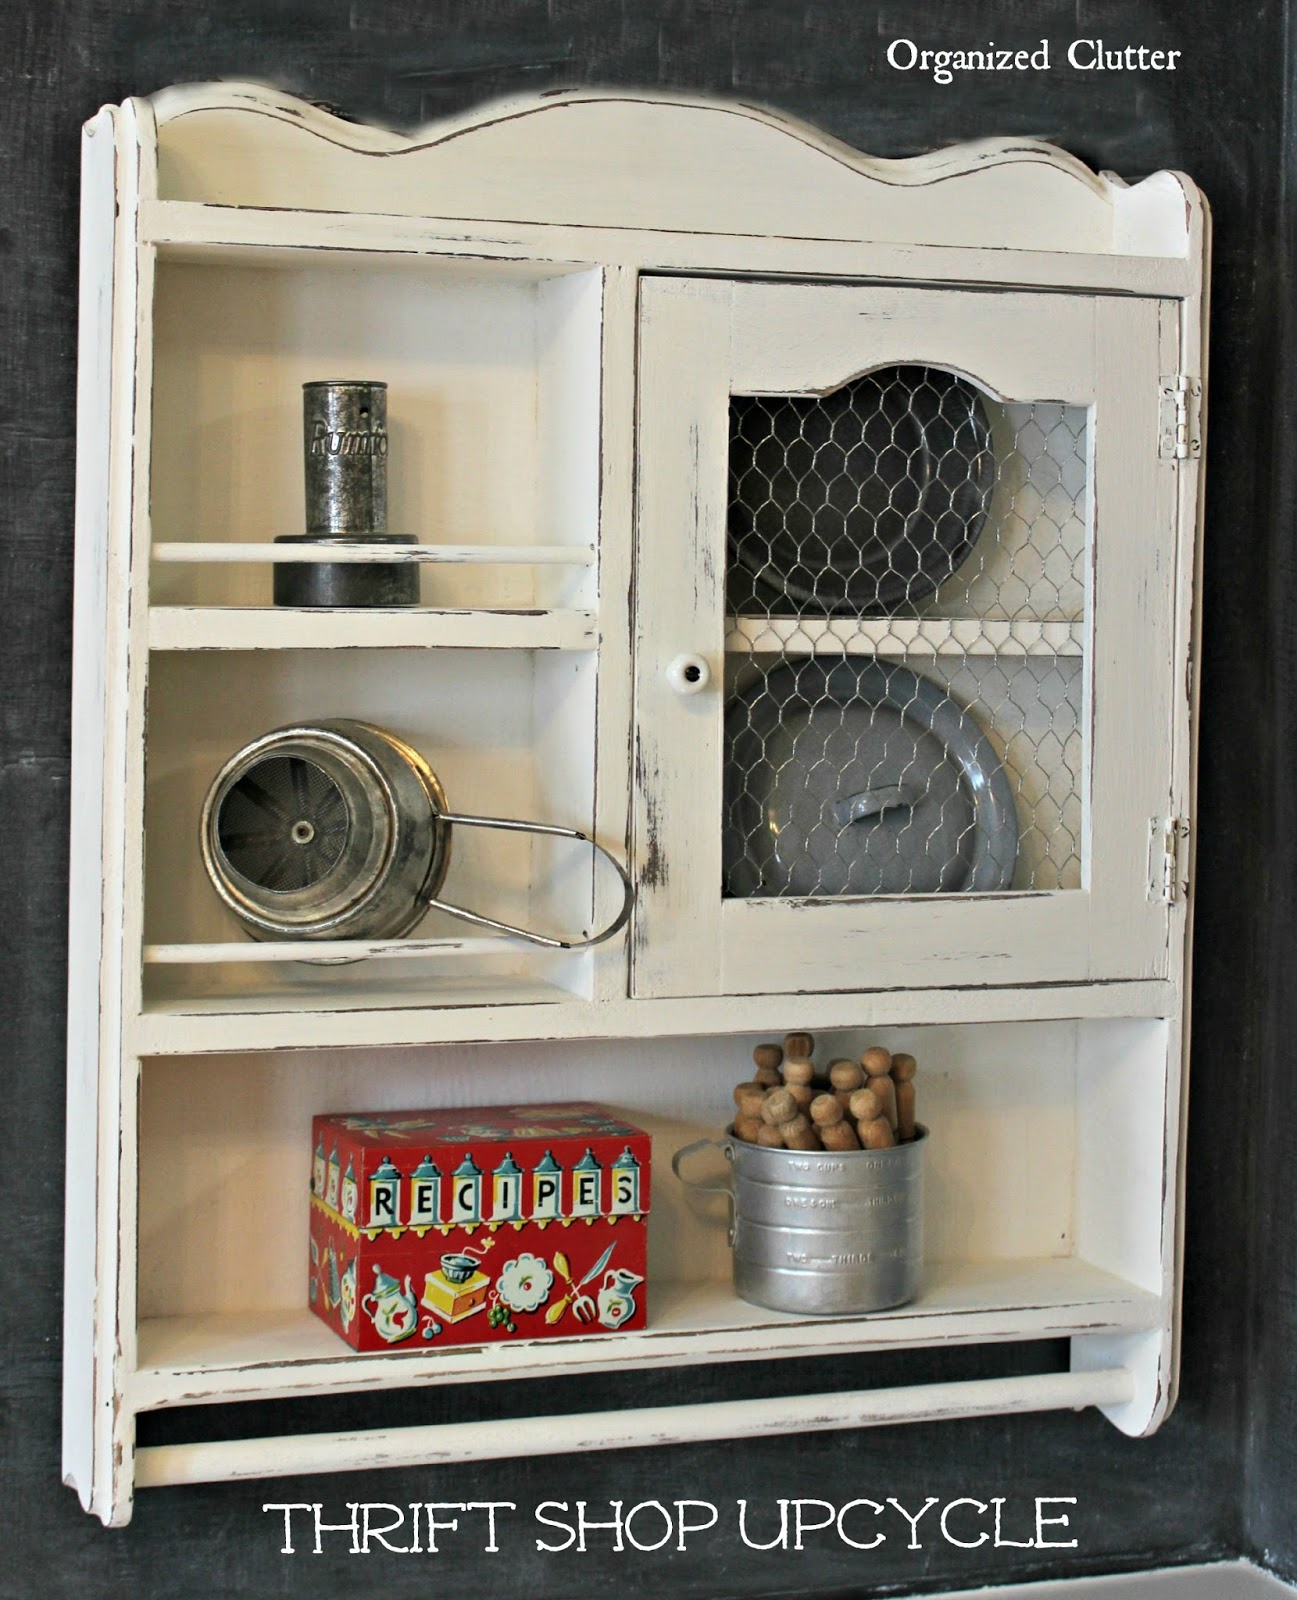 $5 Thrift Shop Shelf Updated with Paint & Chicken Wire www.organizedclutter.net